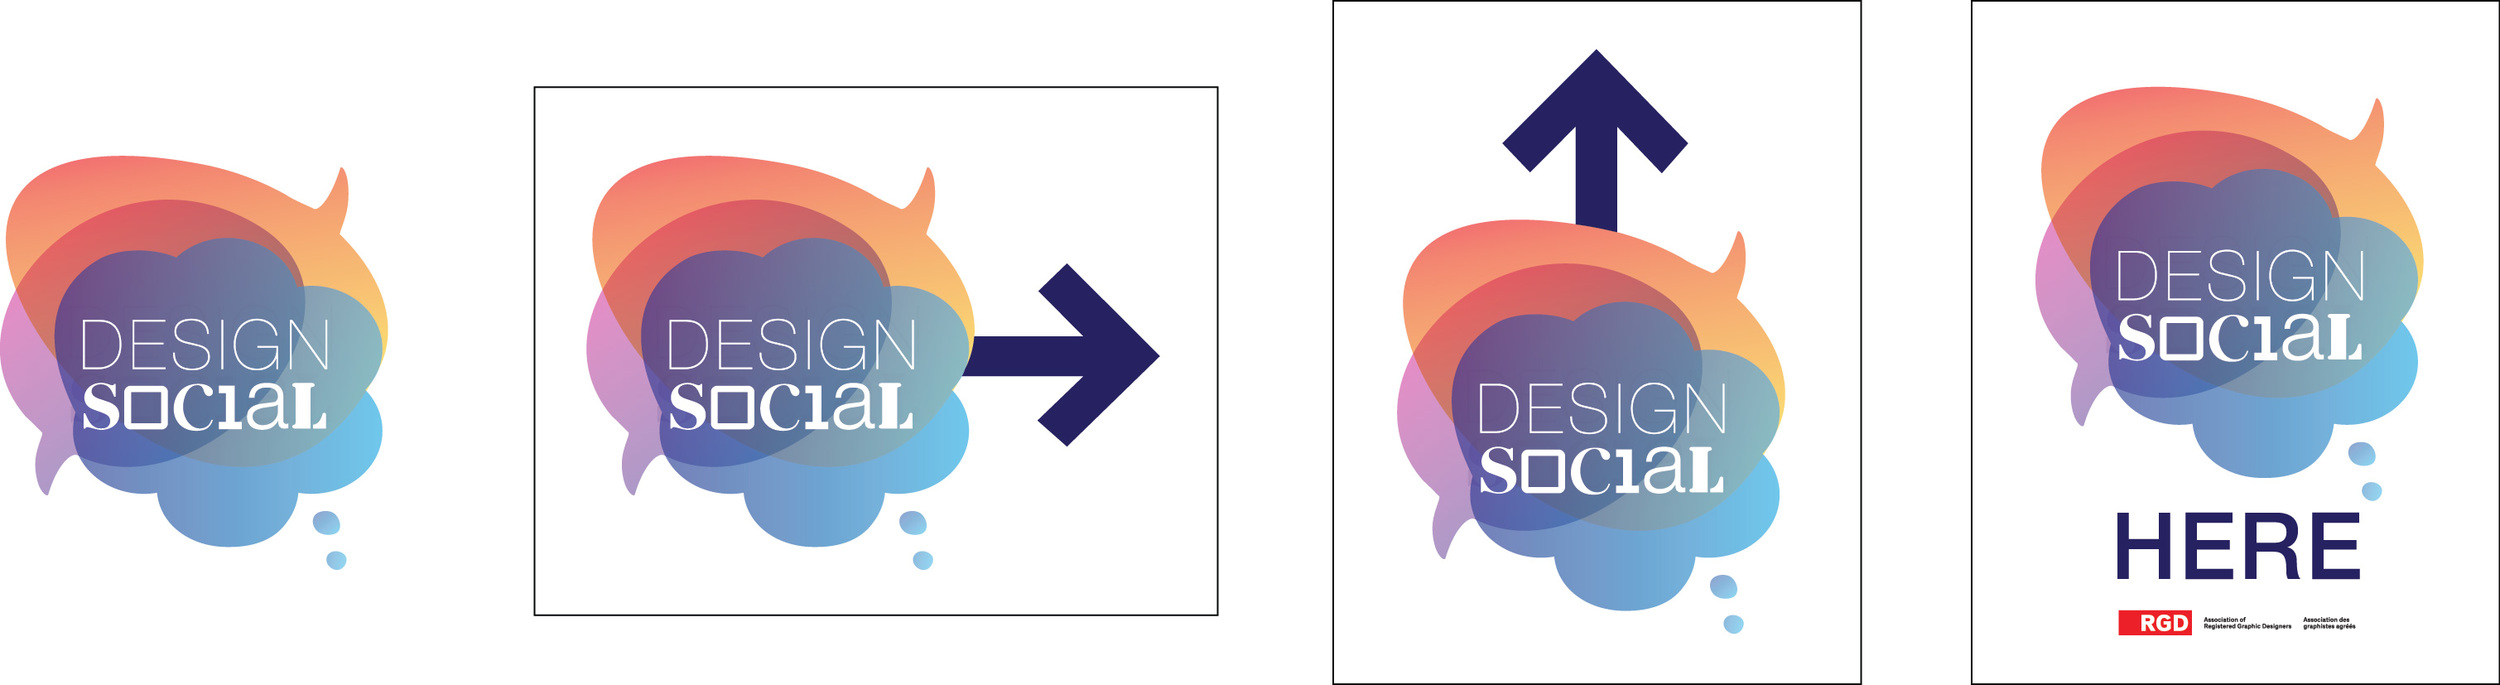 Design Social Logo and Basic Way-finding (used at the various locations the event is hosted)